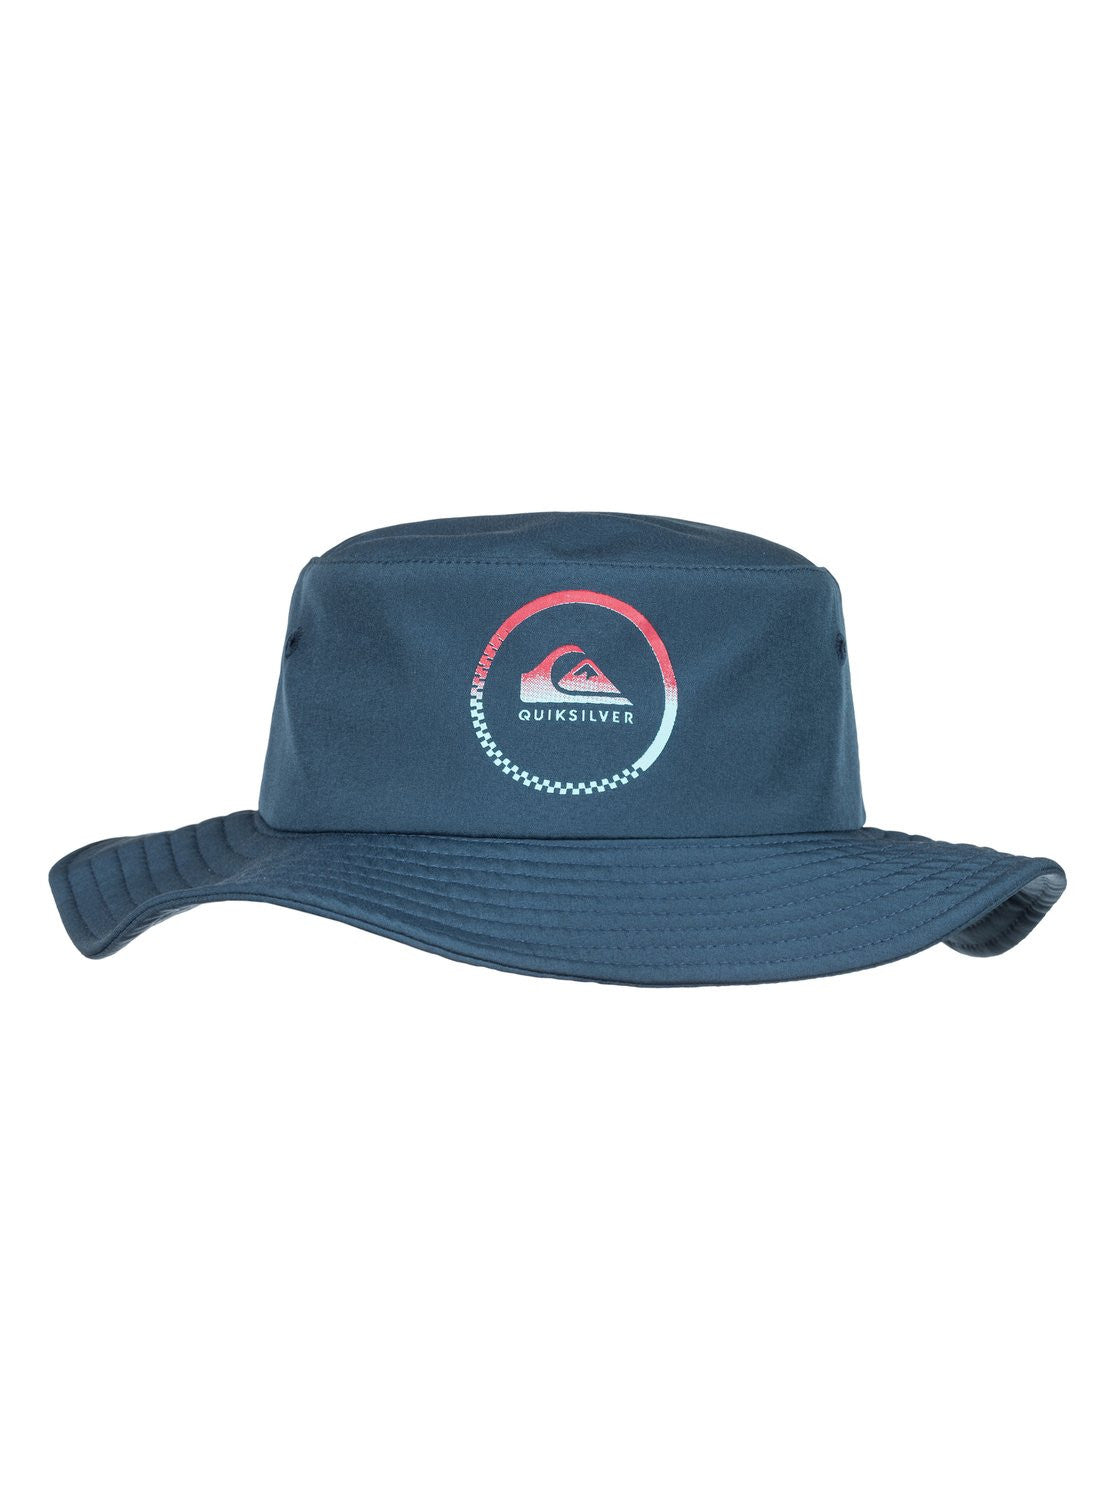 65a4d1b11 Quiksilver Boys Gelsy Baby Hat Navy